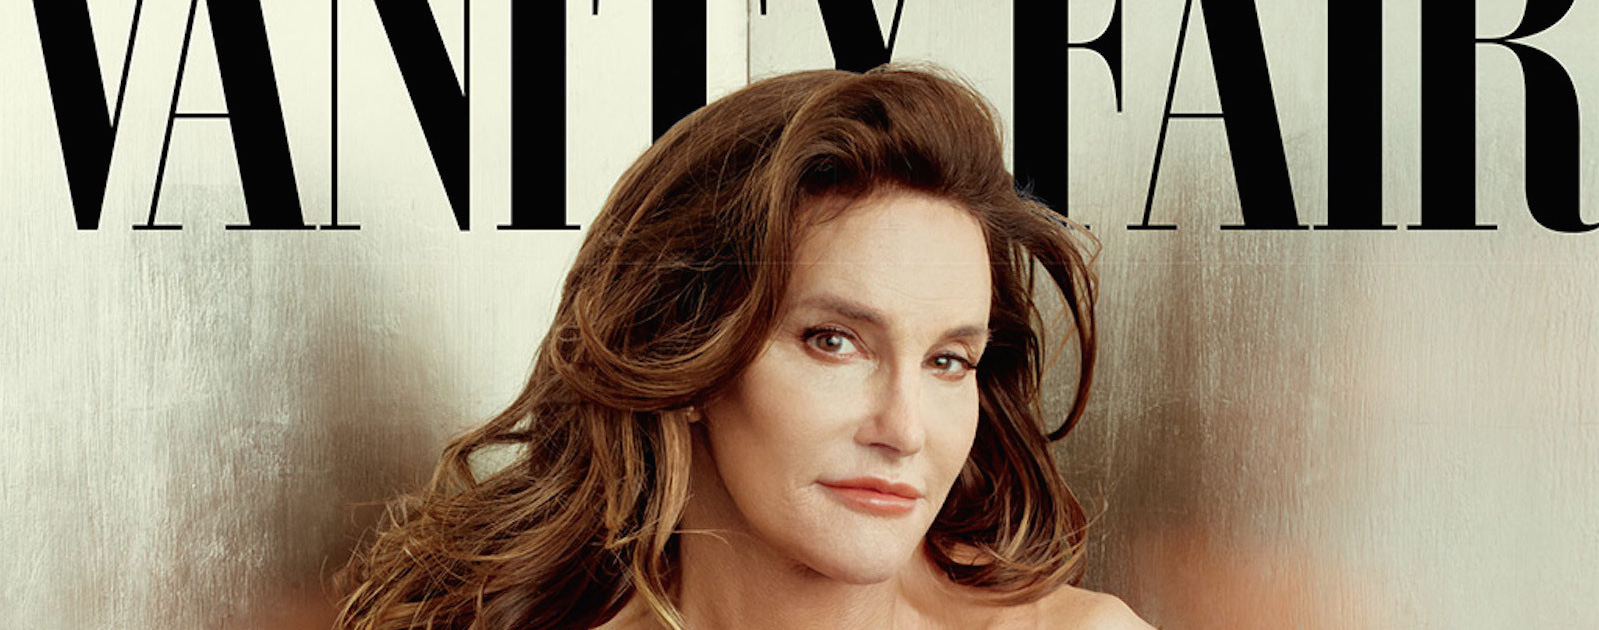 """Call me Caitlyn"": But am I a brand?"